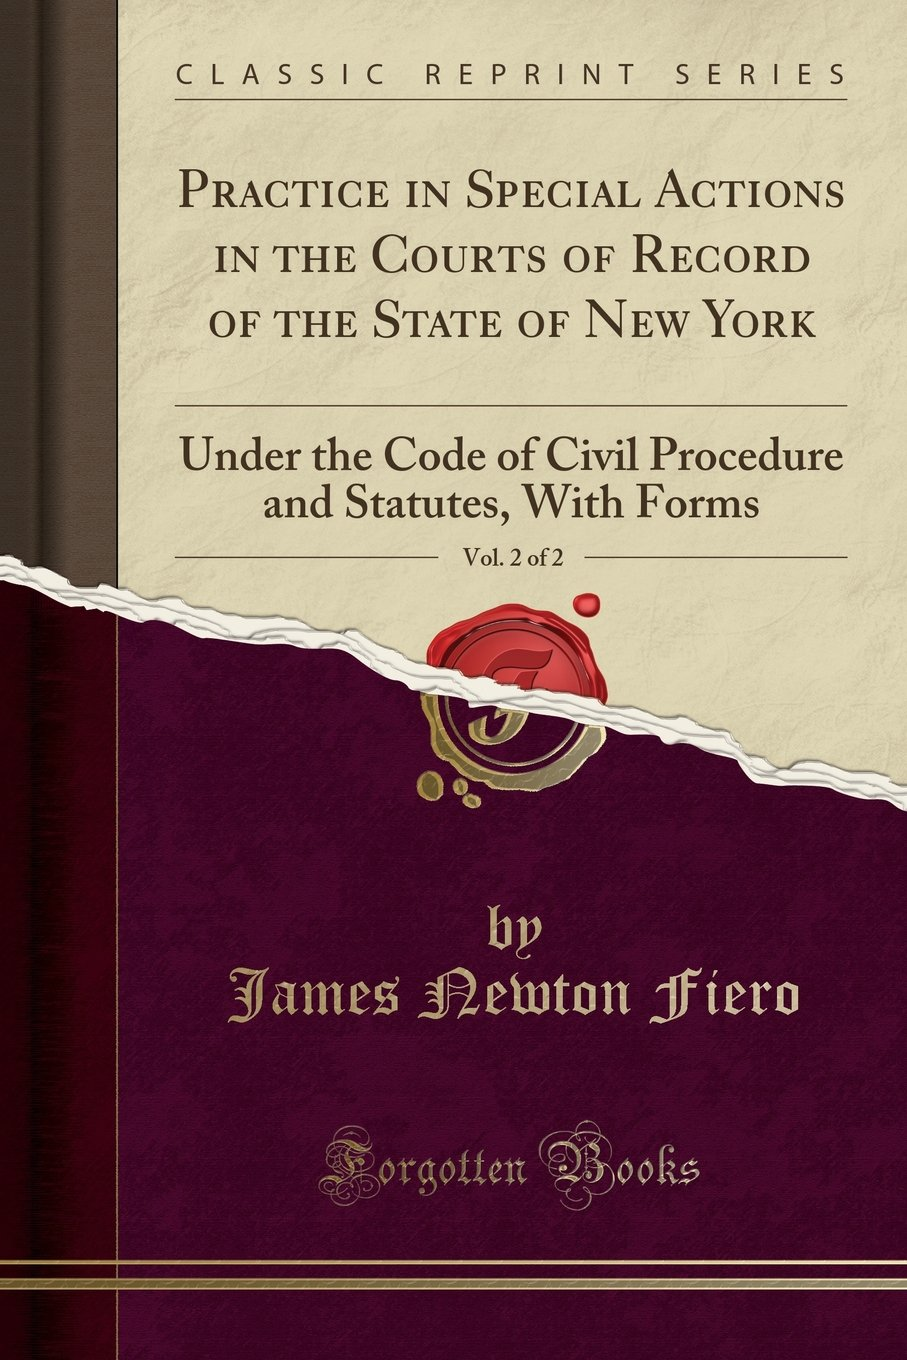 Practice in Special Actions in the Courts of Record of the State of New York, Vol. 2 of 2: Under the Code of Civil Procedure and Statutes, With Forms (Classic Reprint) pdf epub